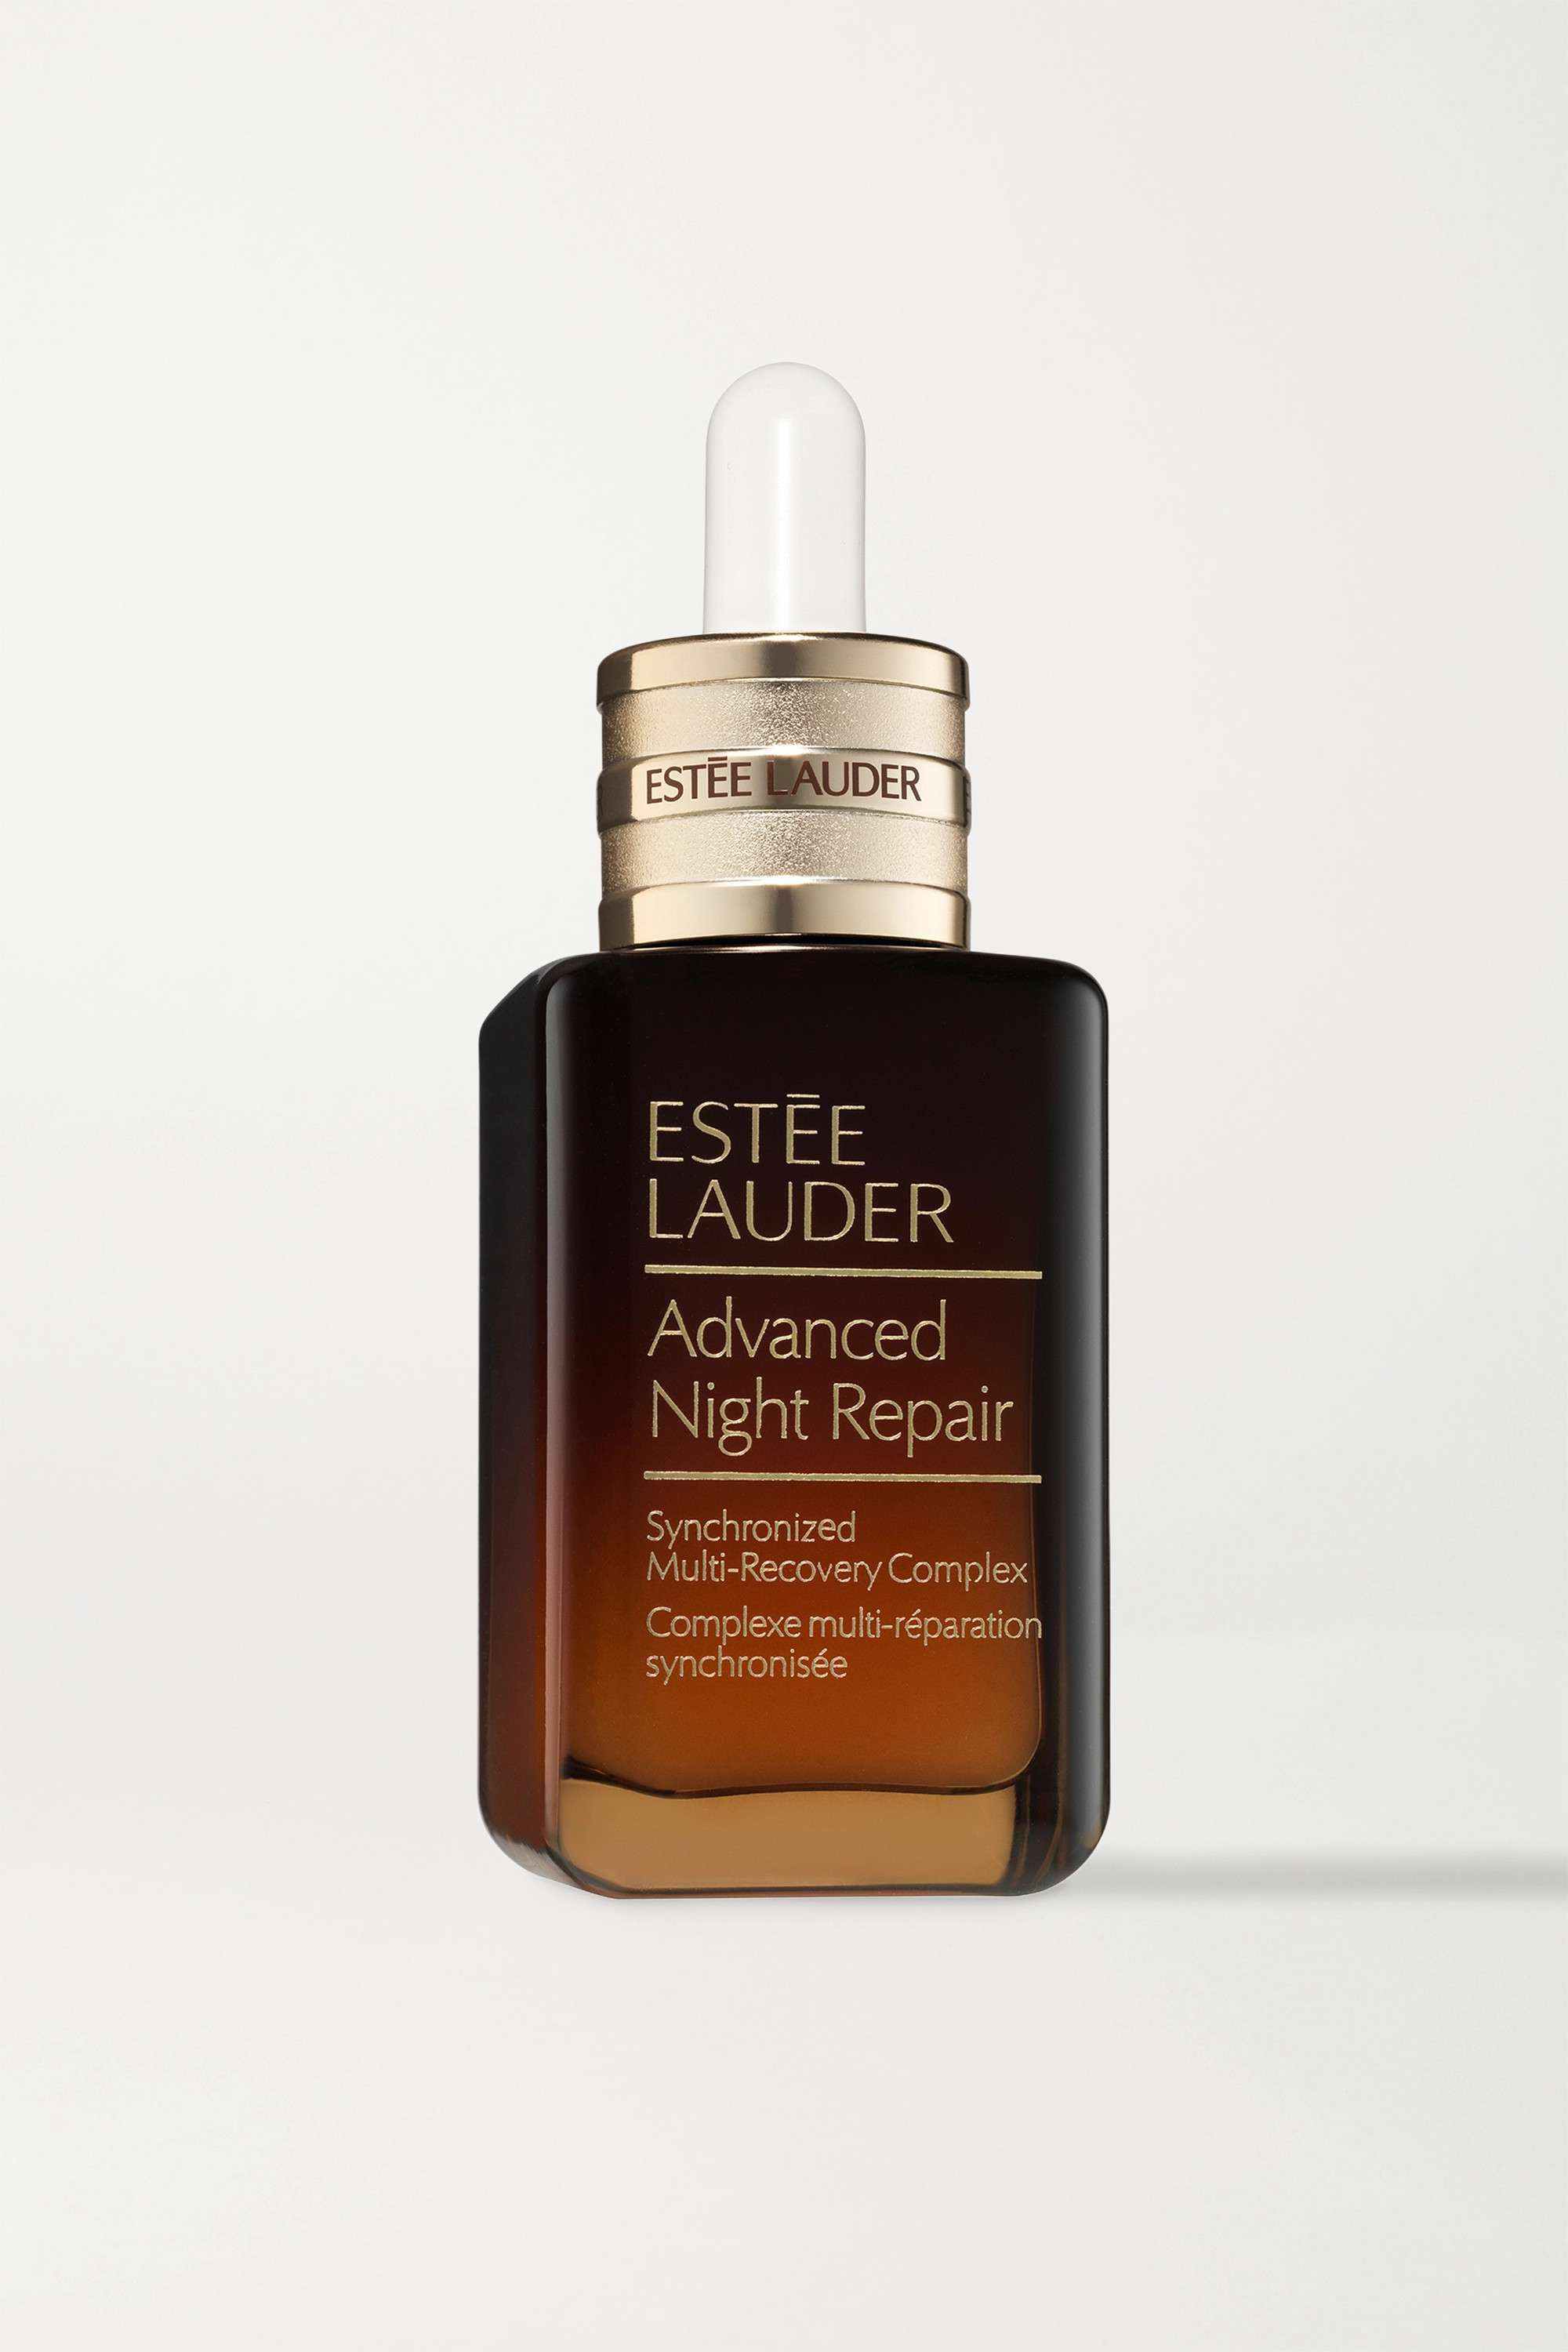 Estée Lauder Advanced Night Repair Synchronized Multi-Recovery Complex, 75ml